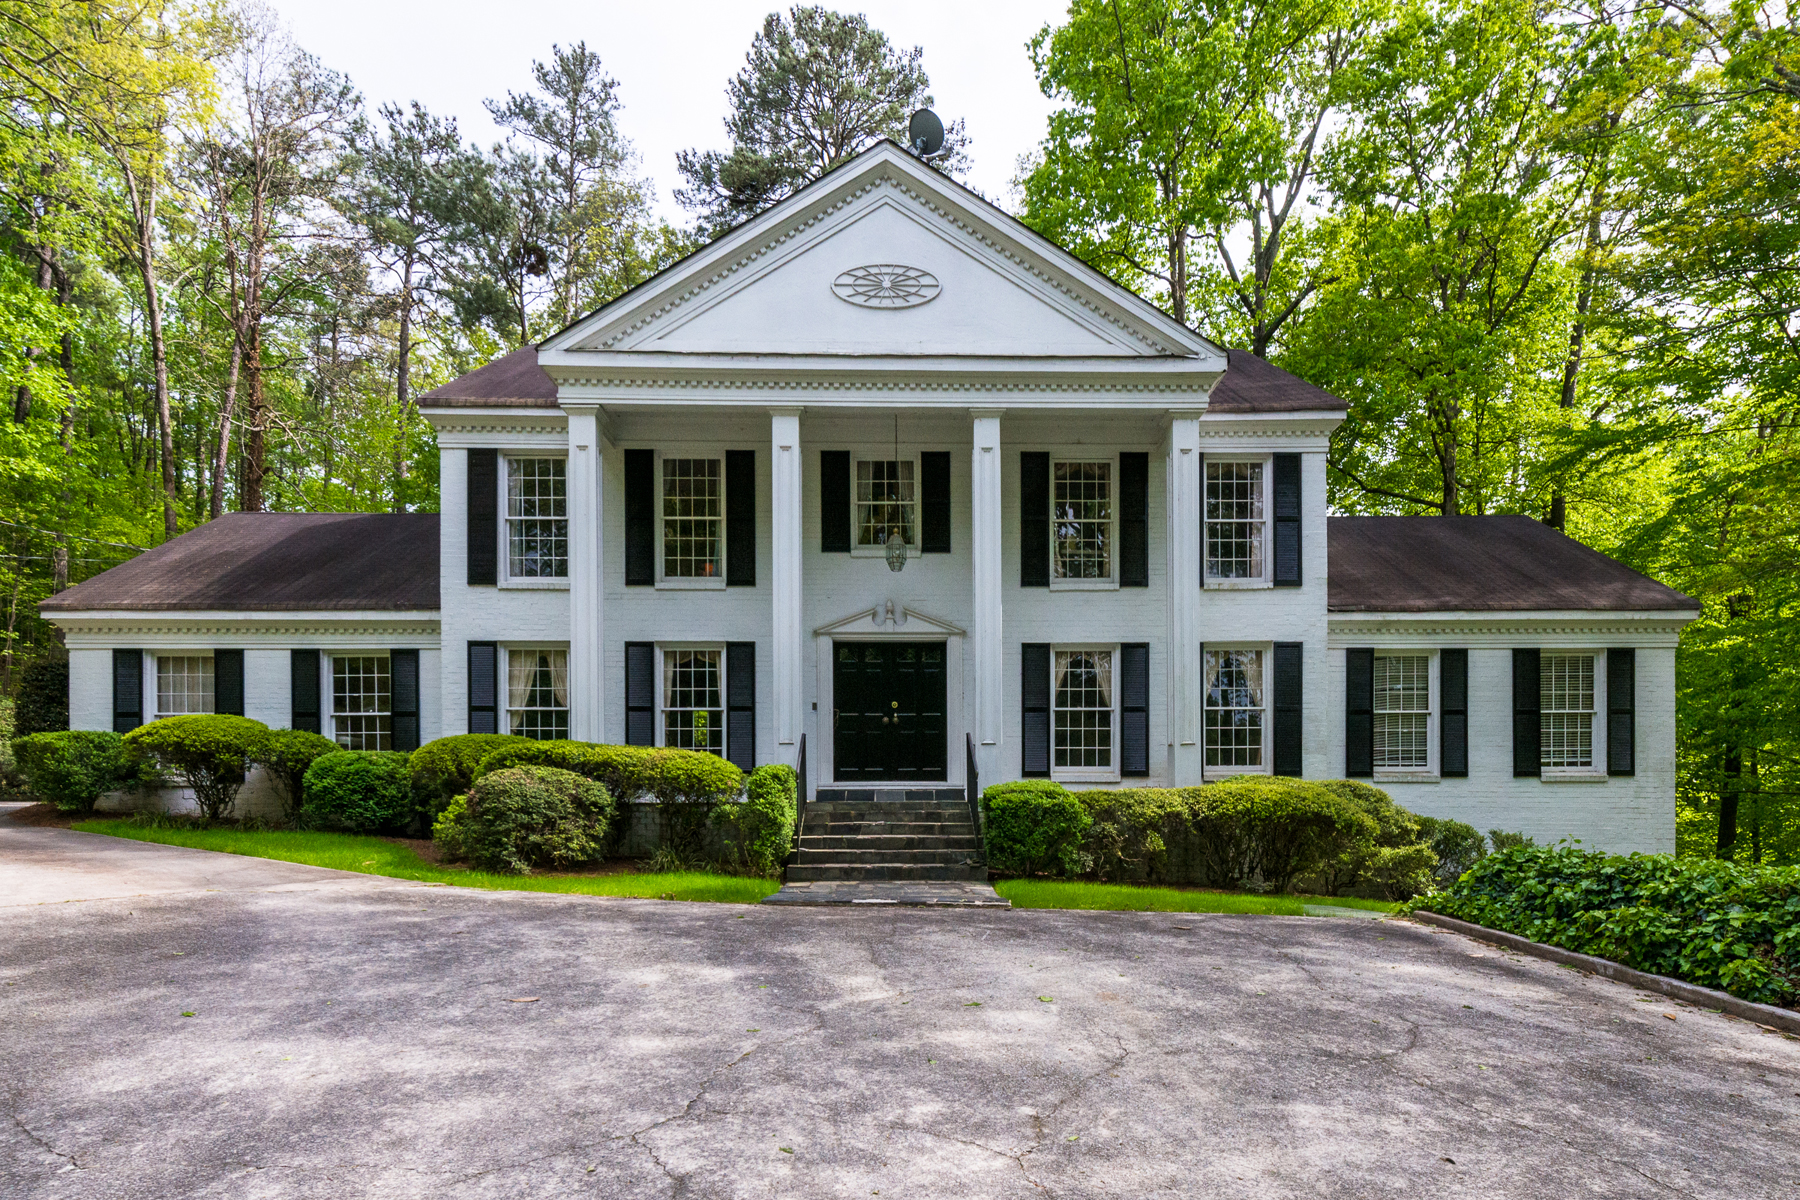 Property For Sale at 5.3 Acre Property With Picturesque Pond In Buckhead